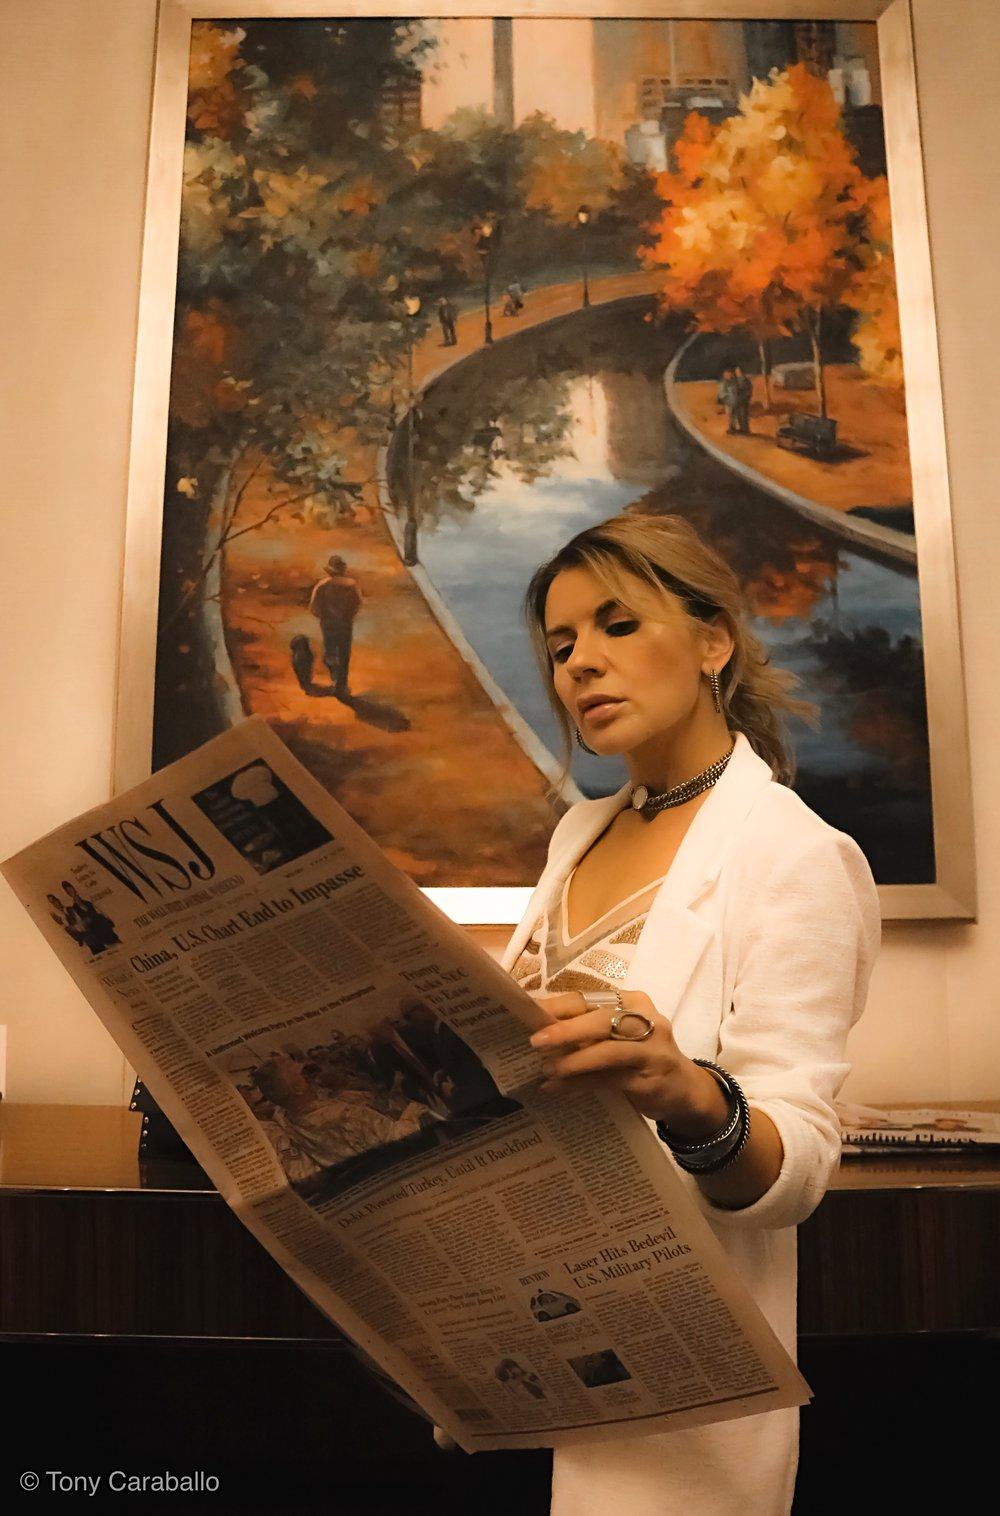 Ritz Carlton Isabel Alexander reading the newspaper in the lobby